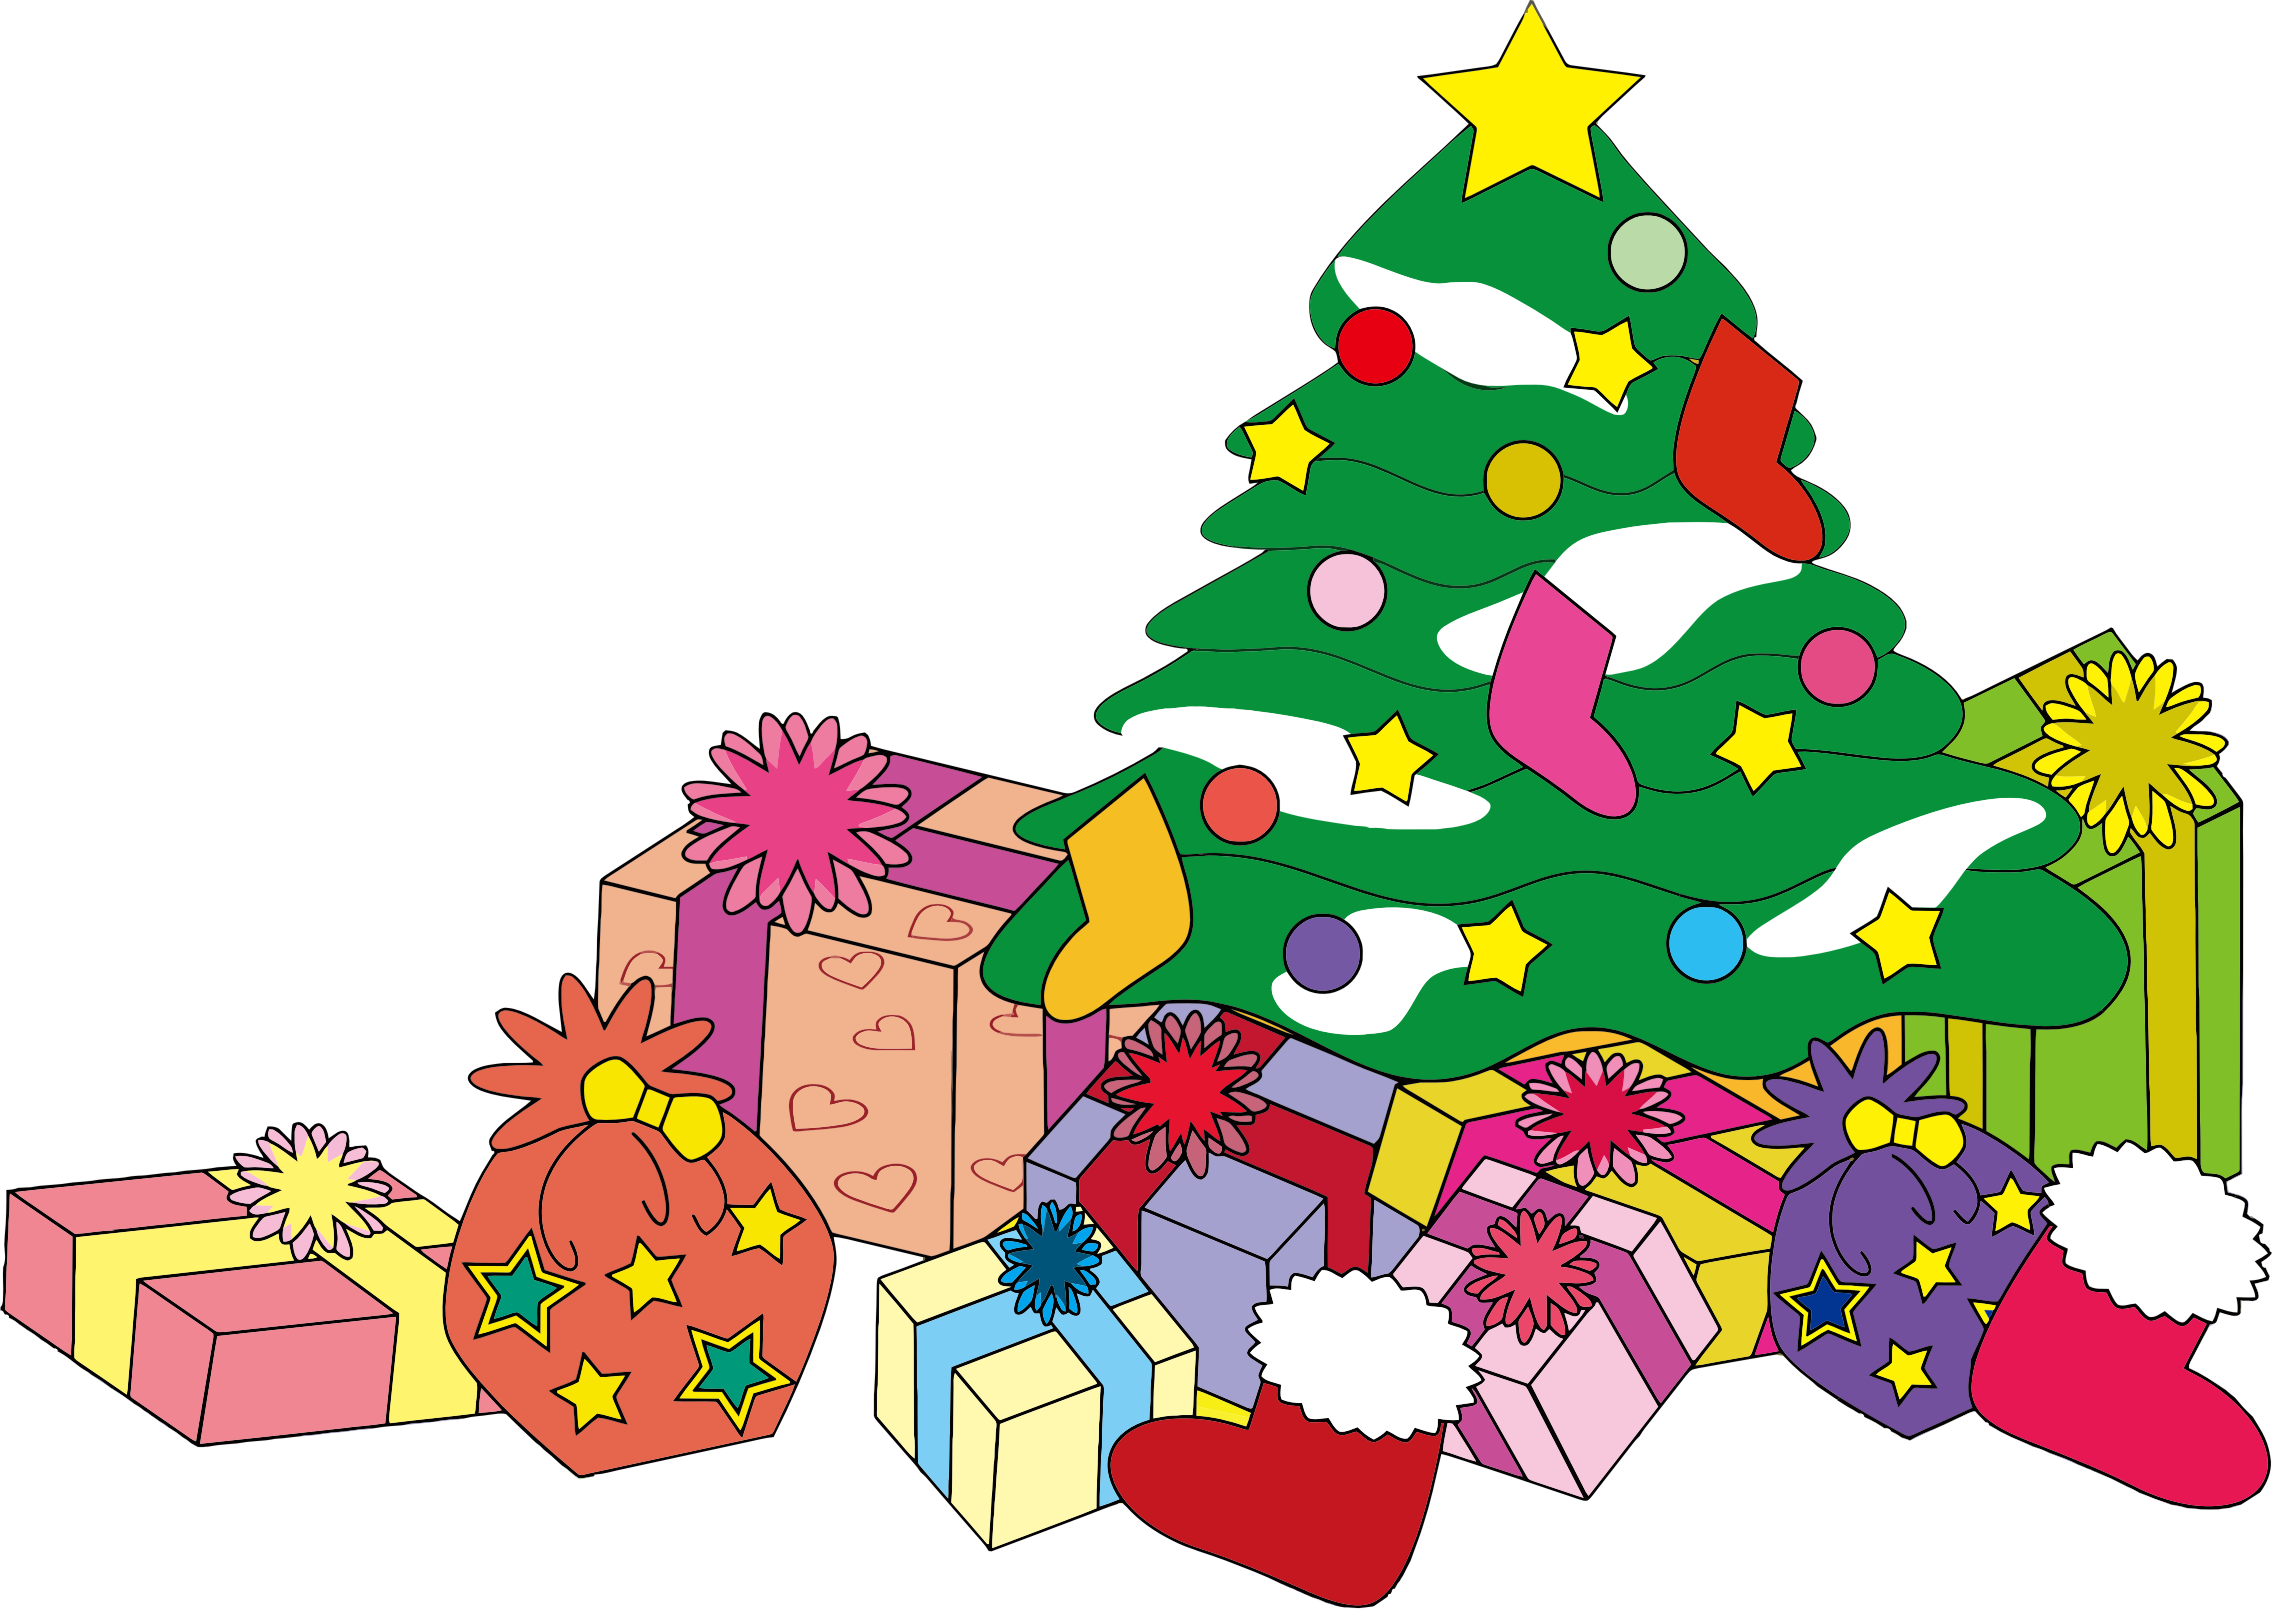 Clipart christmas tree with presents image royalty free download Christmas Gift Clipart at GetDrawings.com | Free for personal use ... image royalty free download